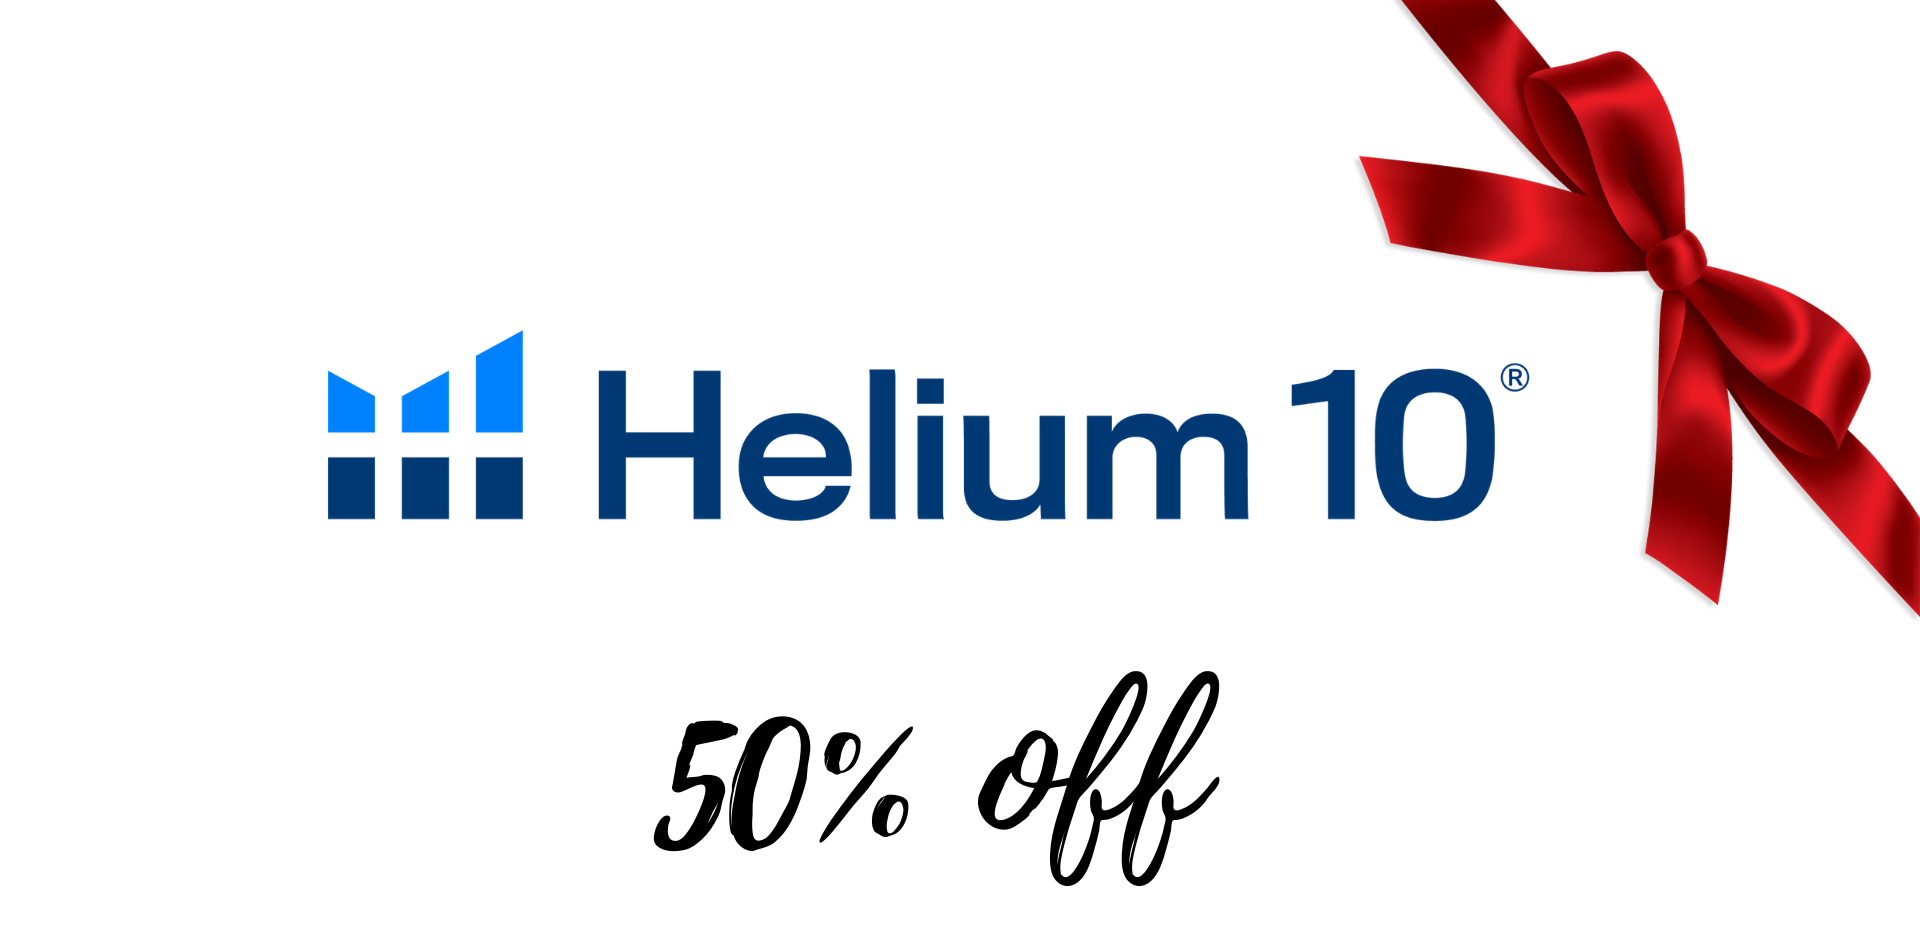 What Is Helium 10 Platinum